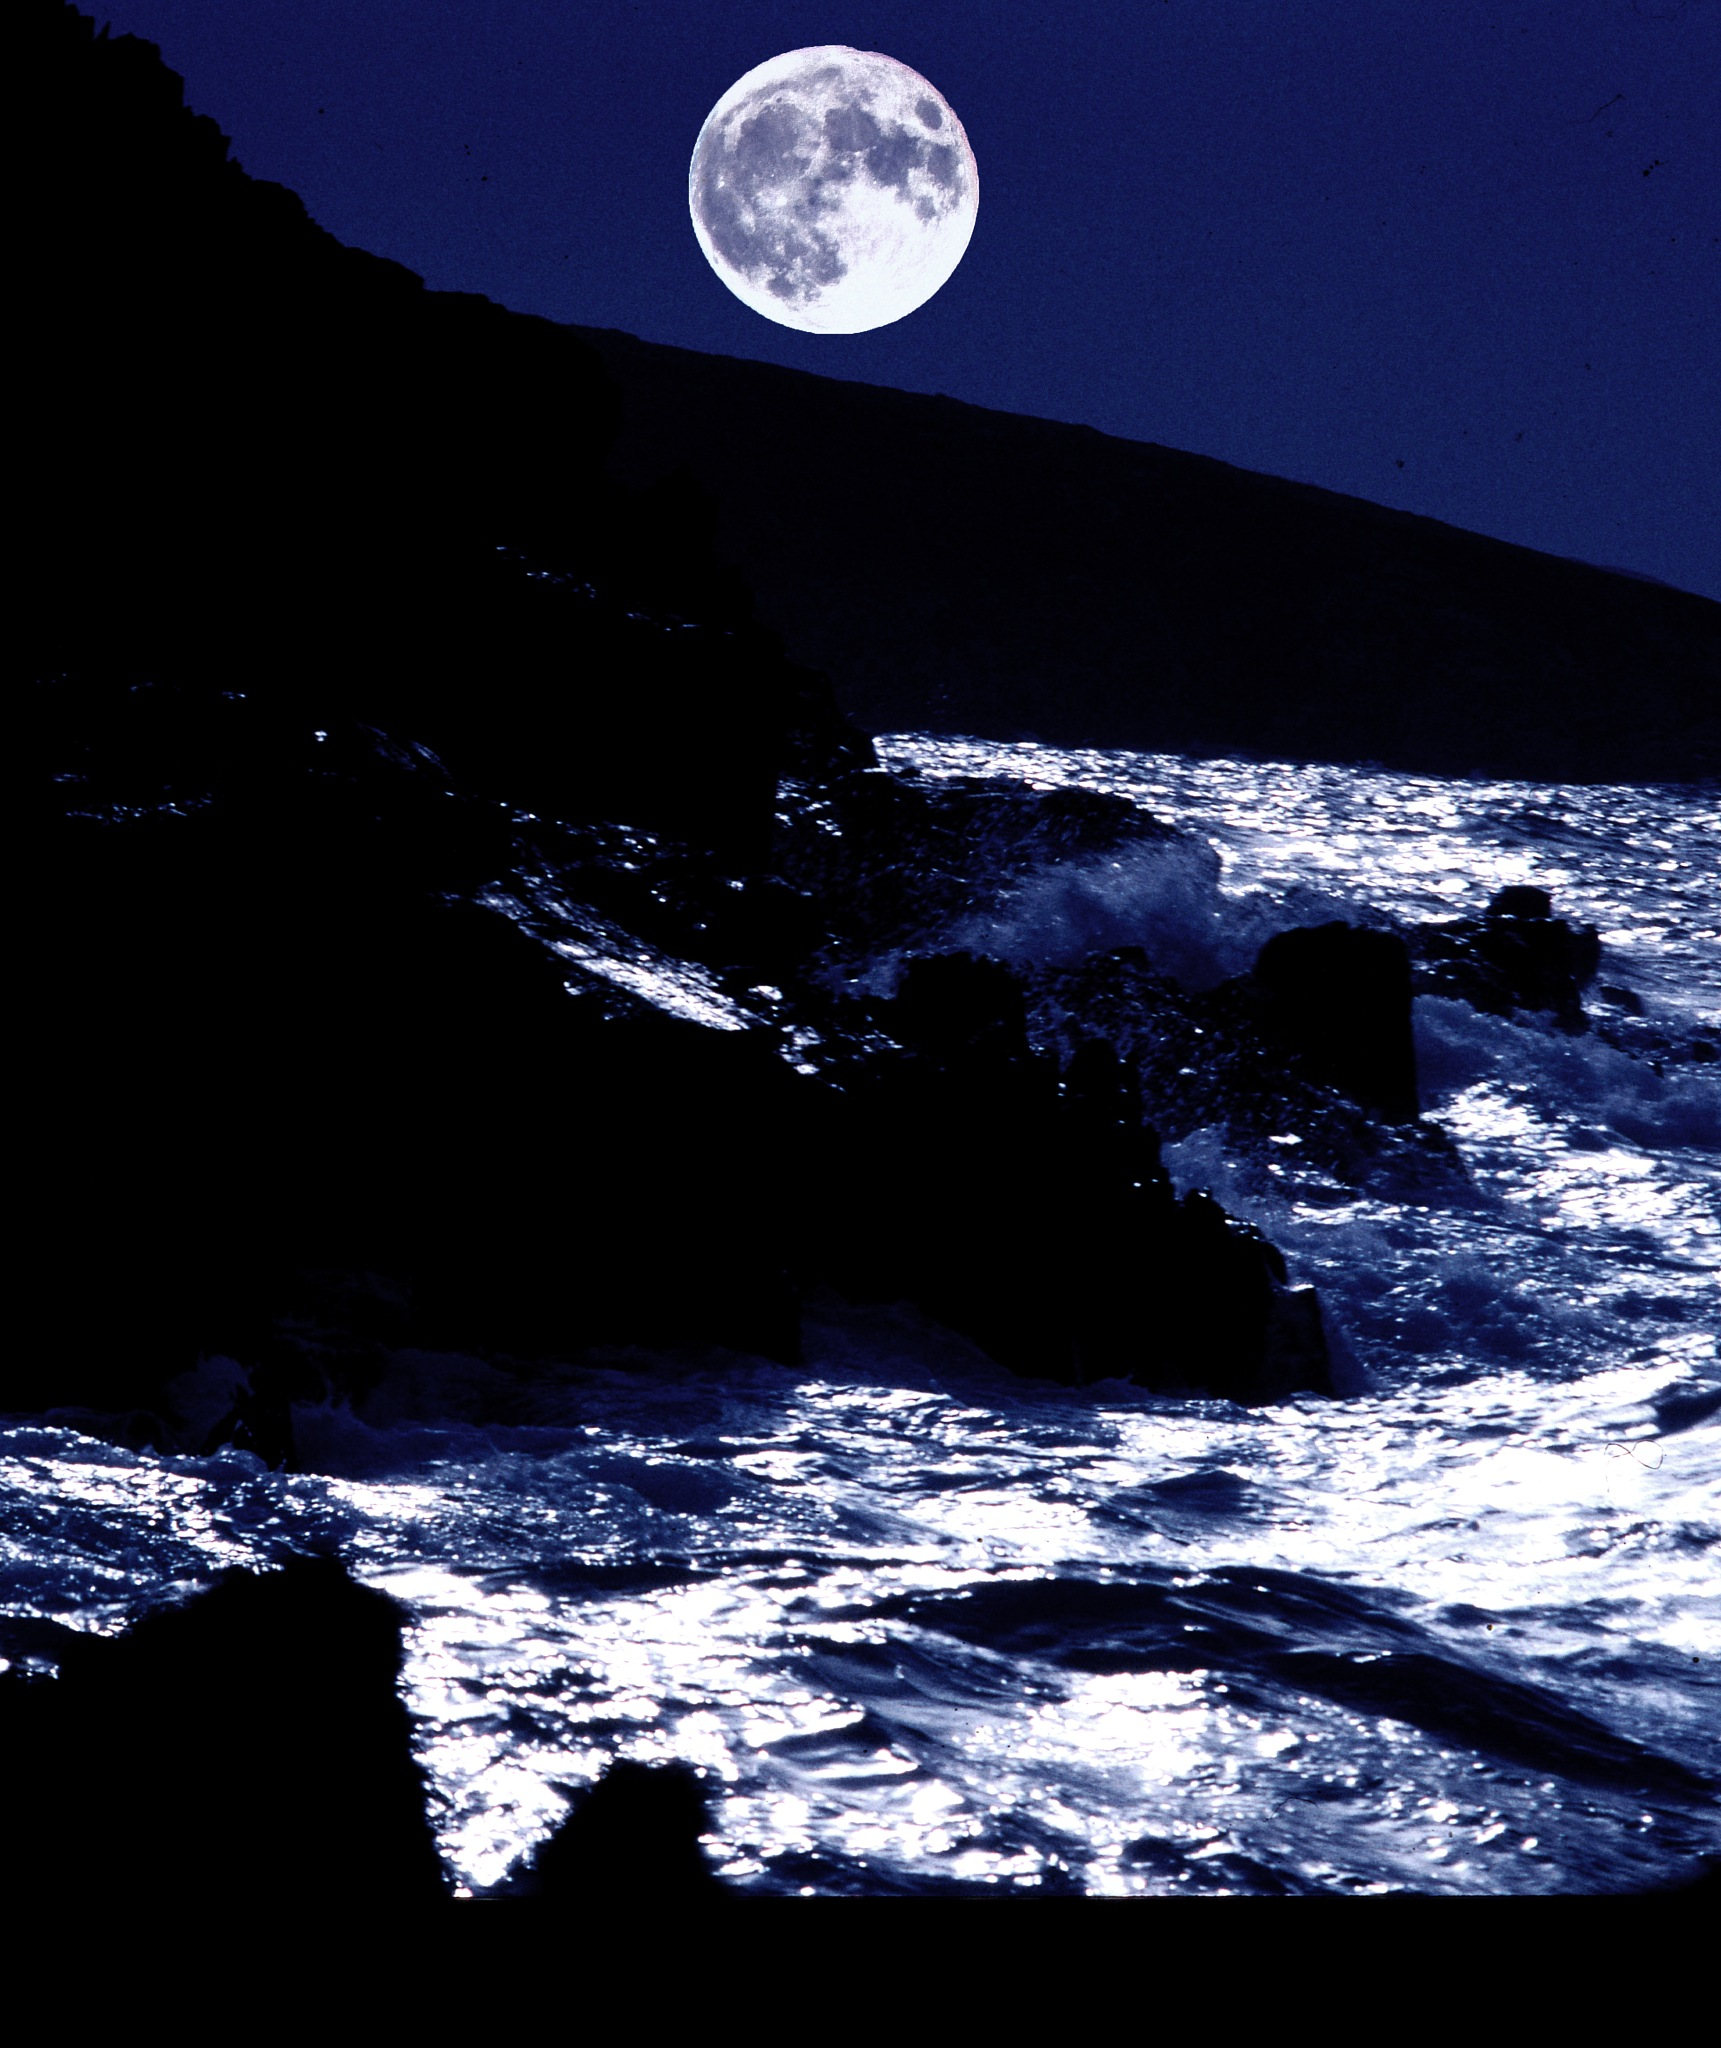 ocean moon by steve.quick.58